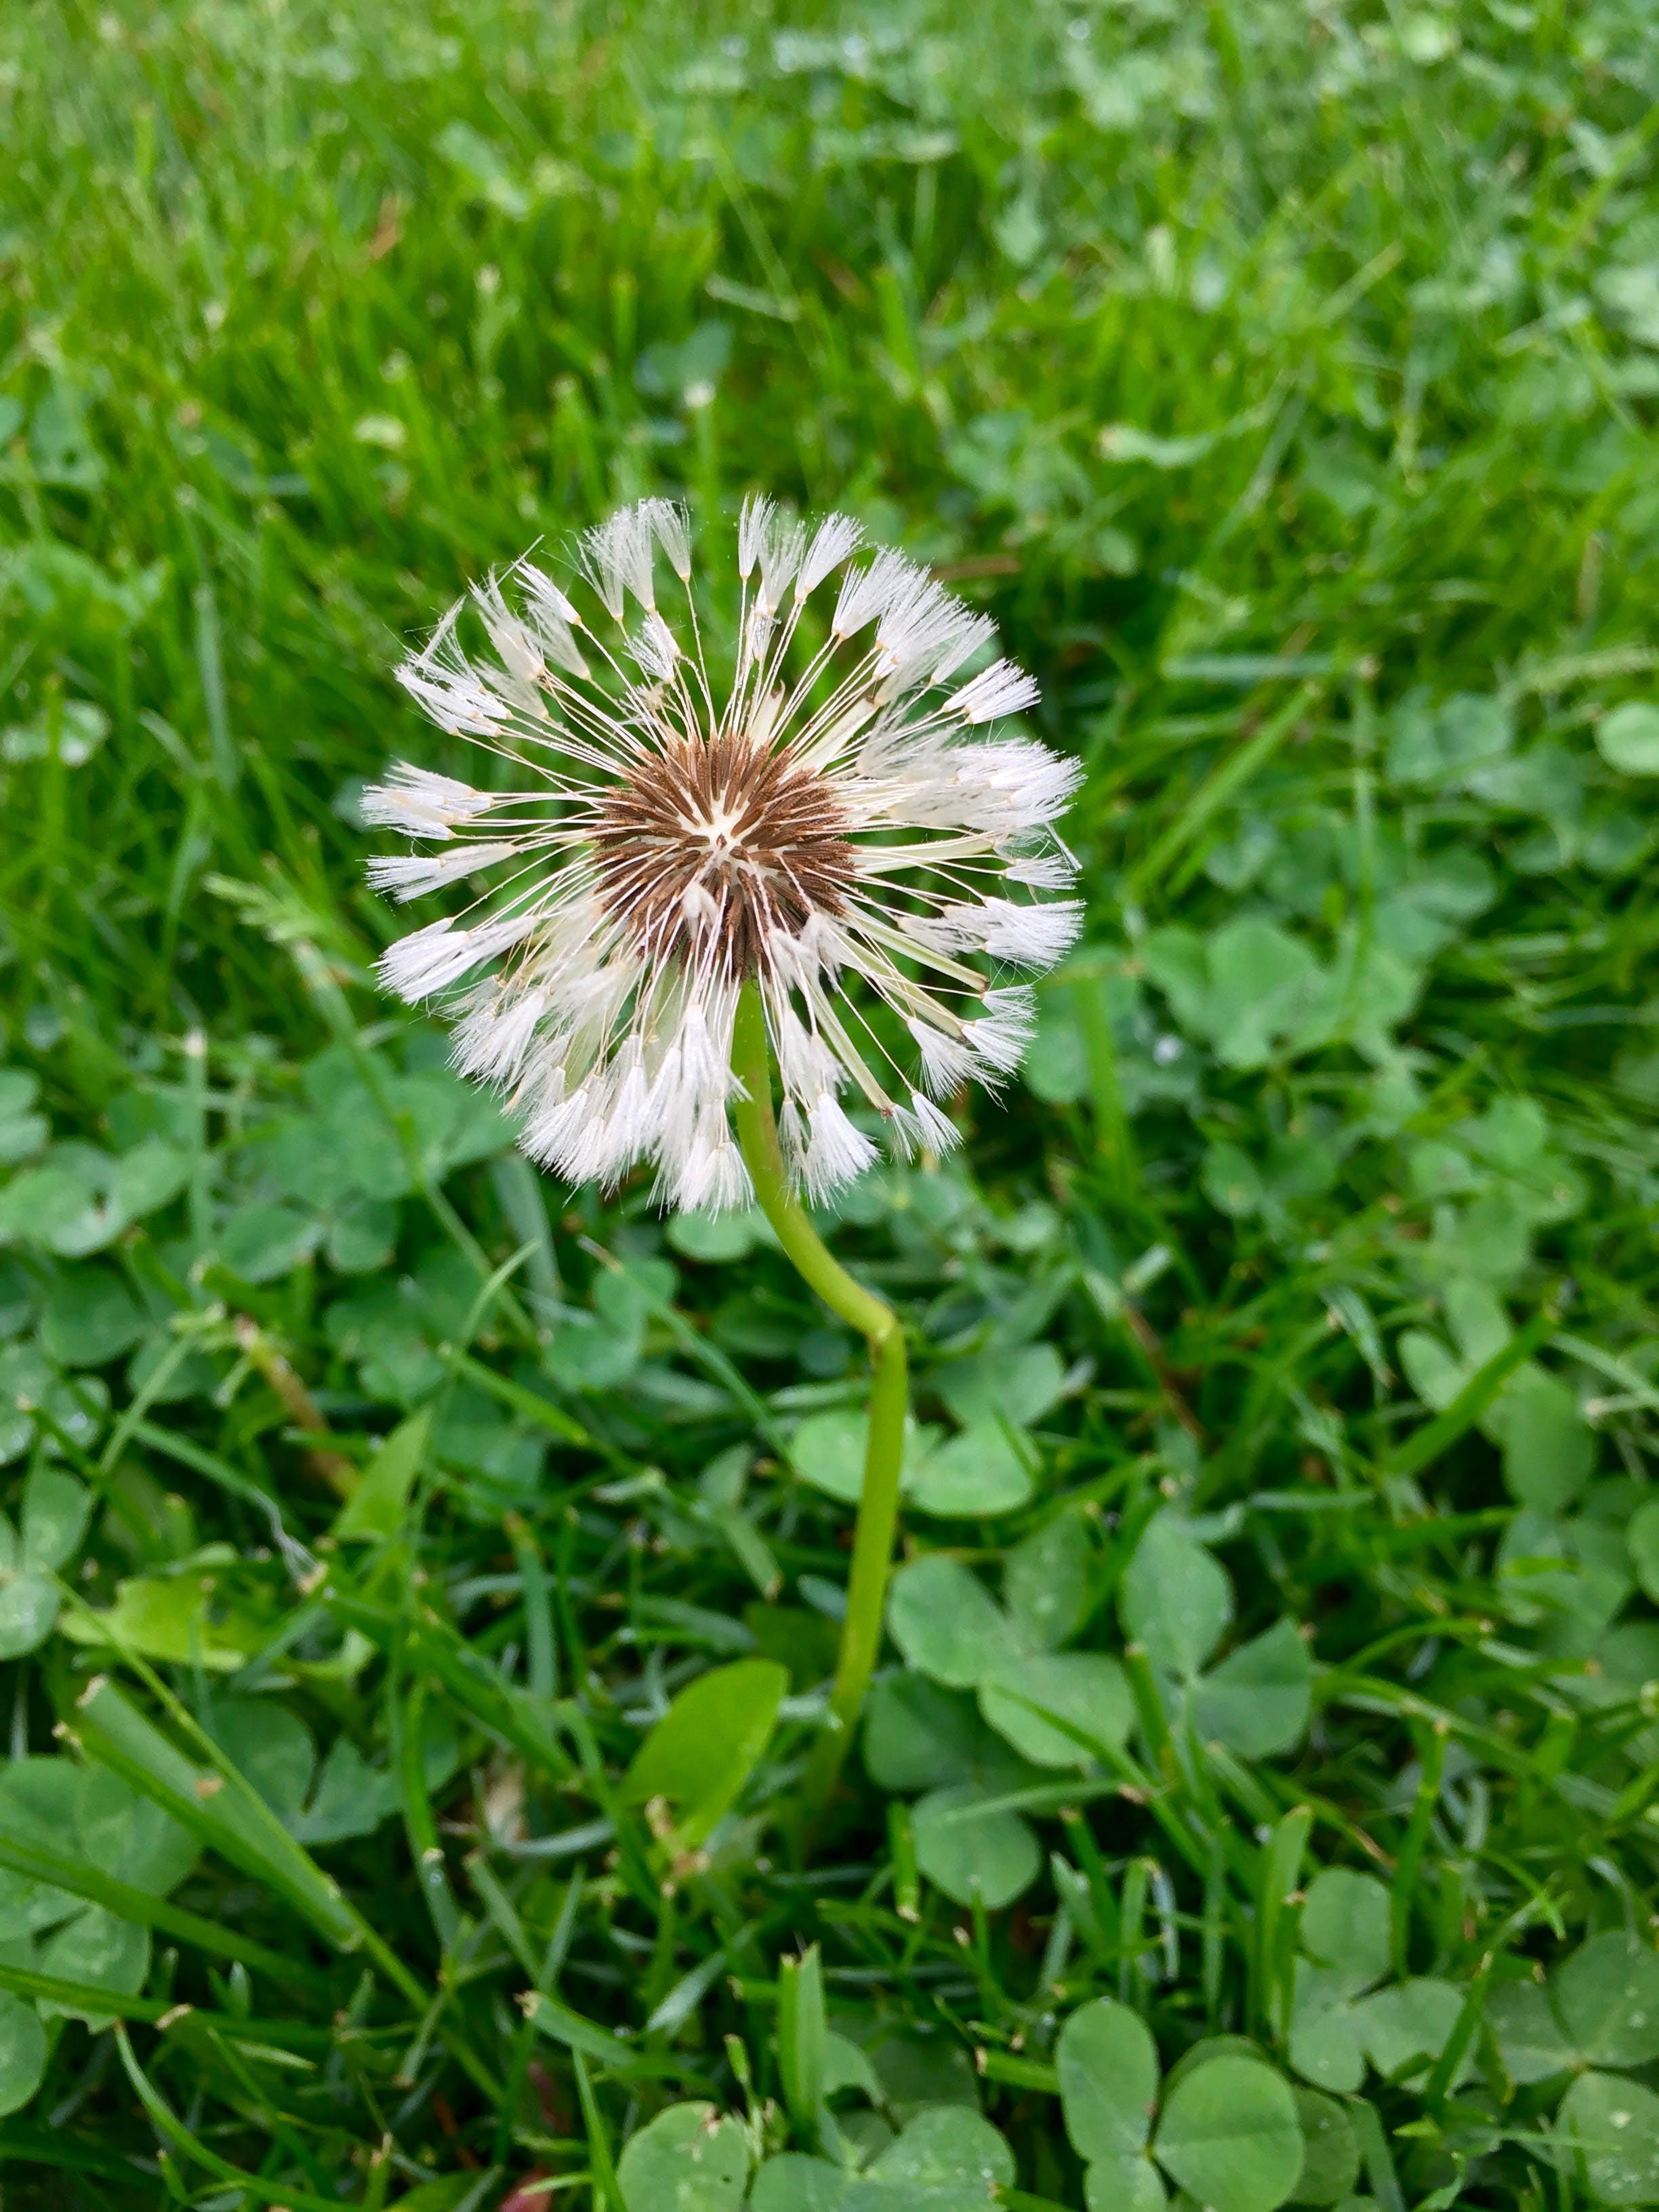 Free stock photo of grass, flower, dandelion, weed